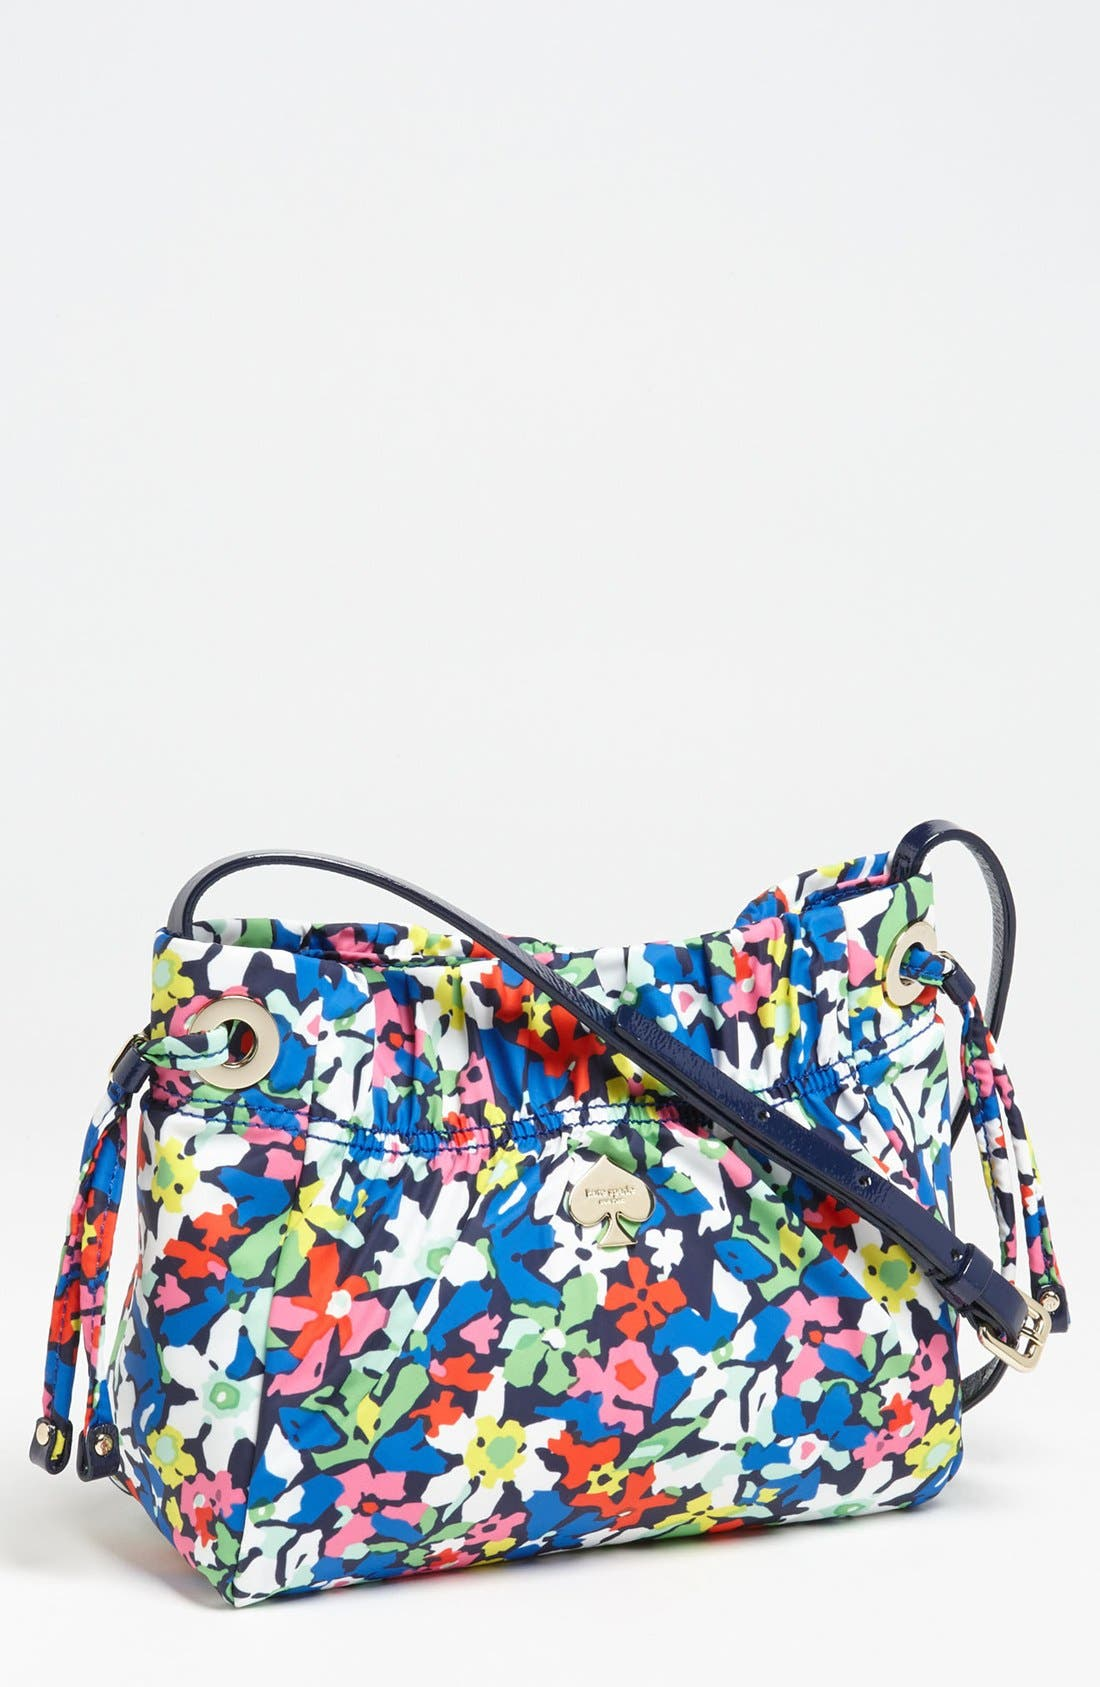 Main Image - kate spade new york 'carroll gardens - bryan' crossbody bag